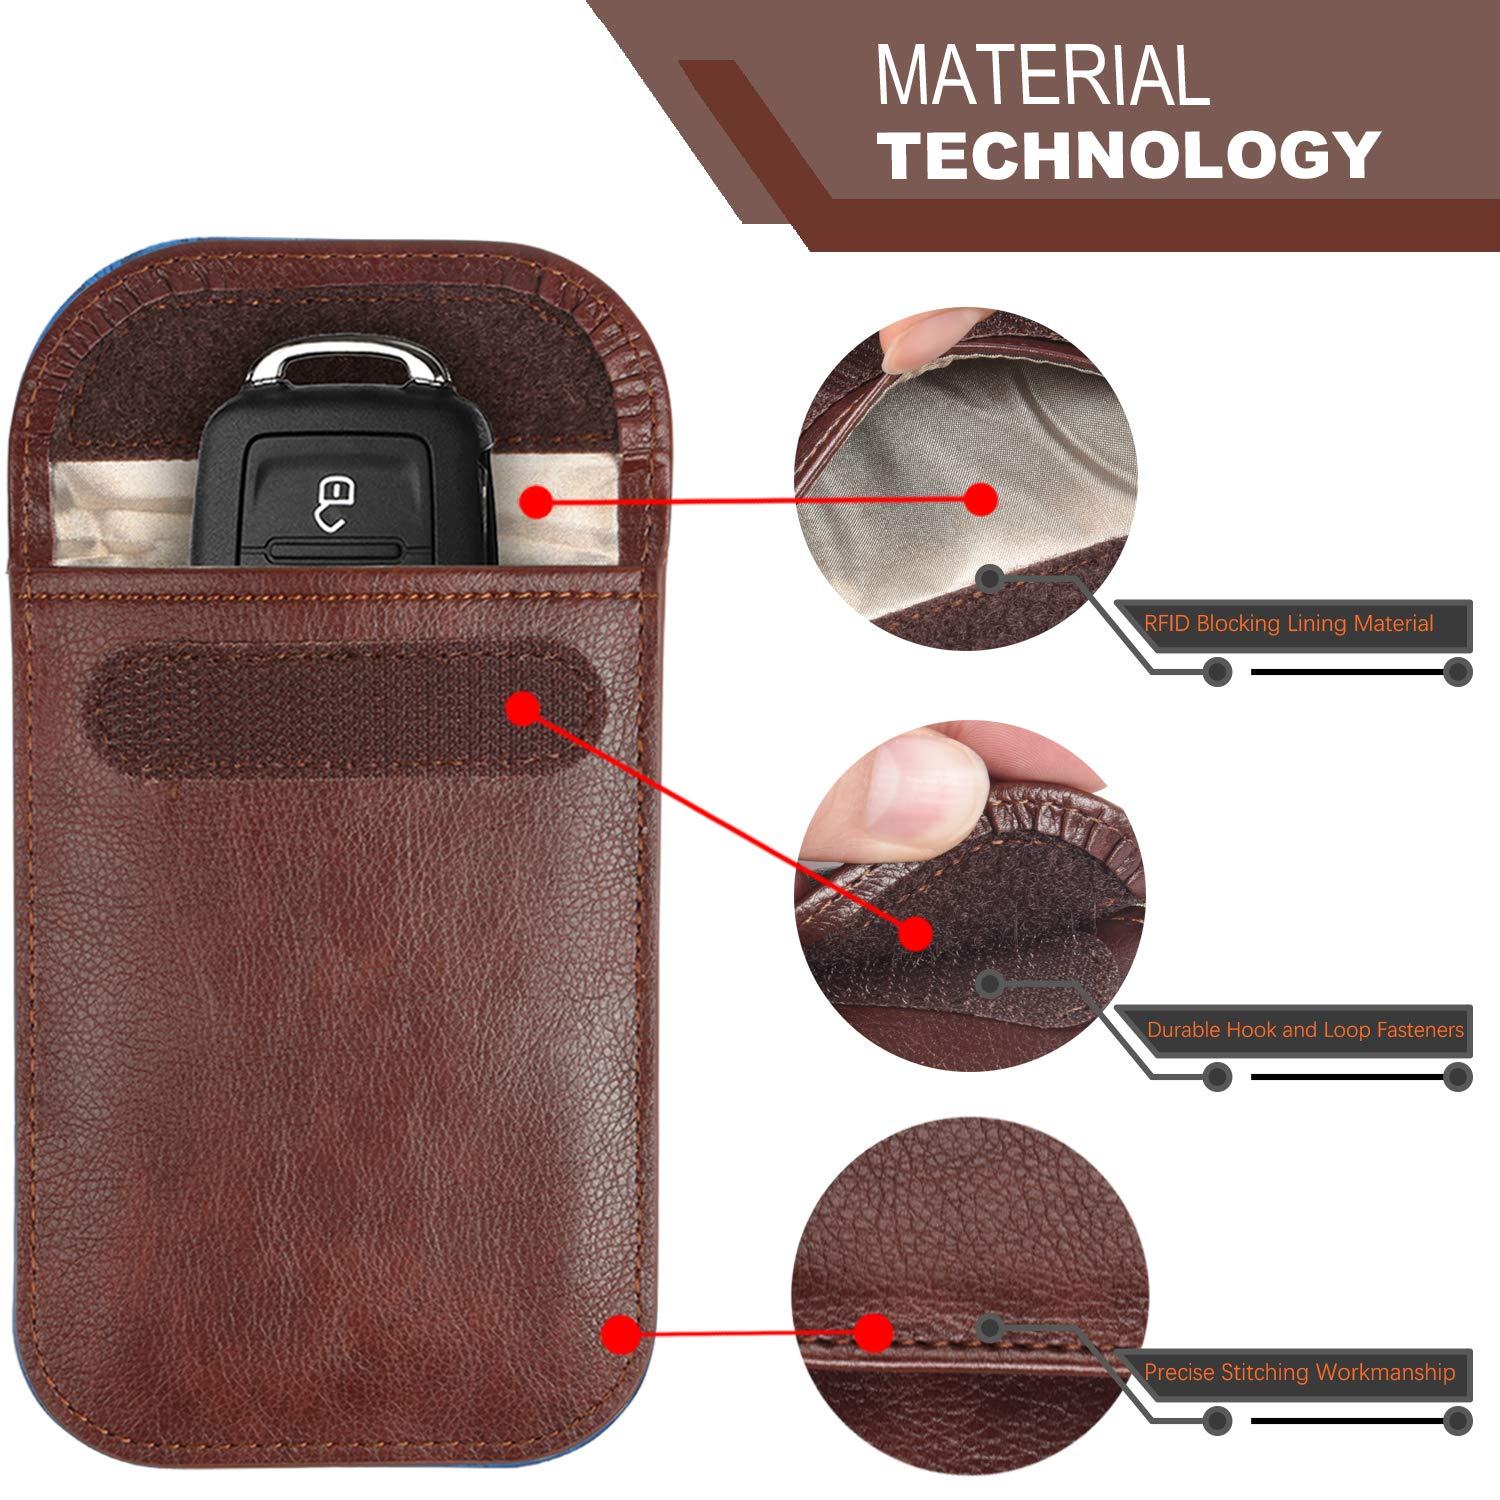 Synthetic Leather RFID signal blocker Keyless Entry Fob Pouch,Anti Theft Faraday Protection Bags-Black+Wine Red,2Pack Faraday Bag for Car Keys